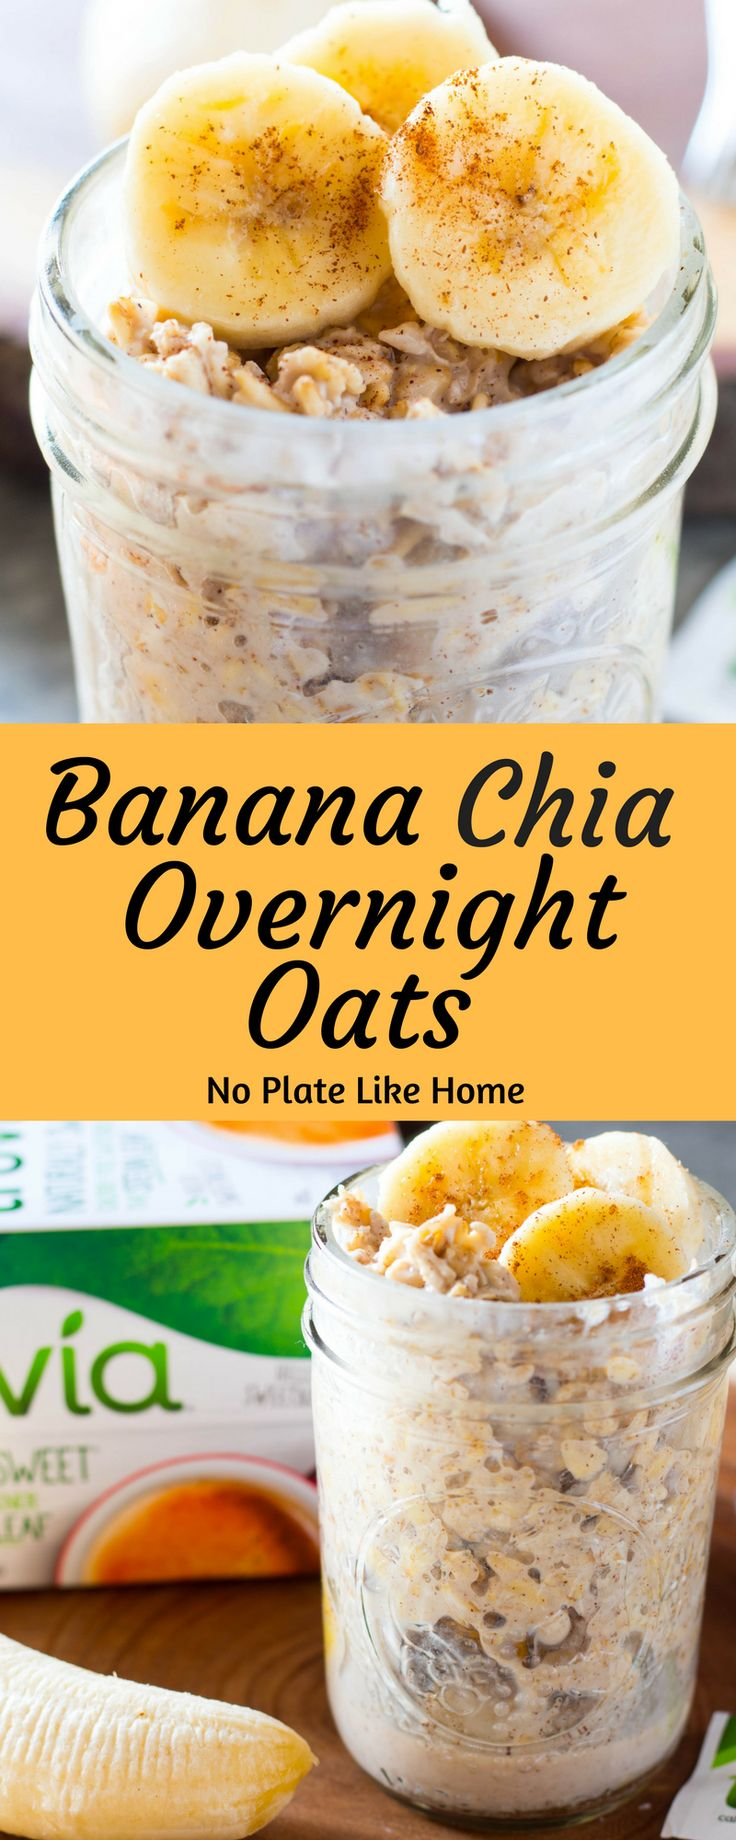 Banana Chia Overnight Oats are a great way to start the day with a natural sweetener. You'll love the taste of these overnight oats! #shop #PickNaturesSweetness